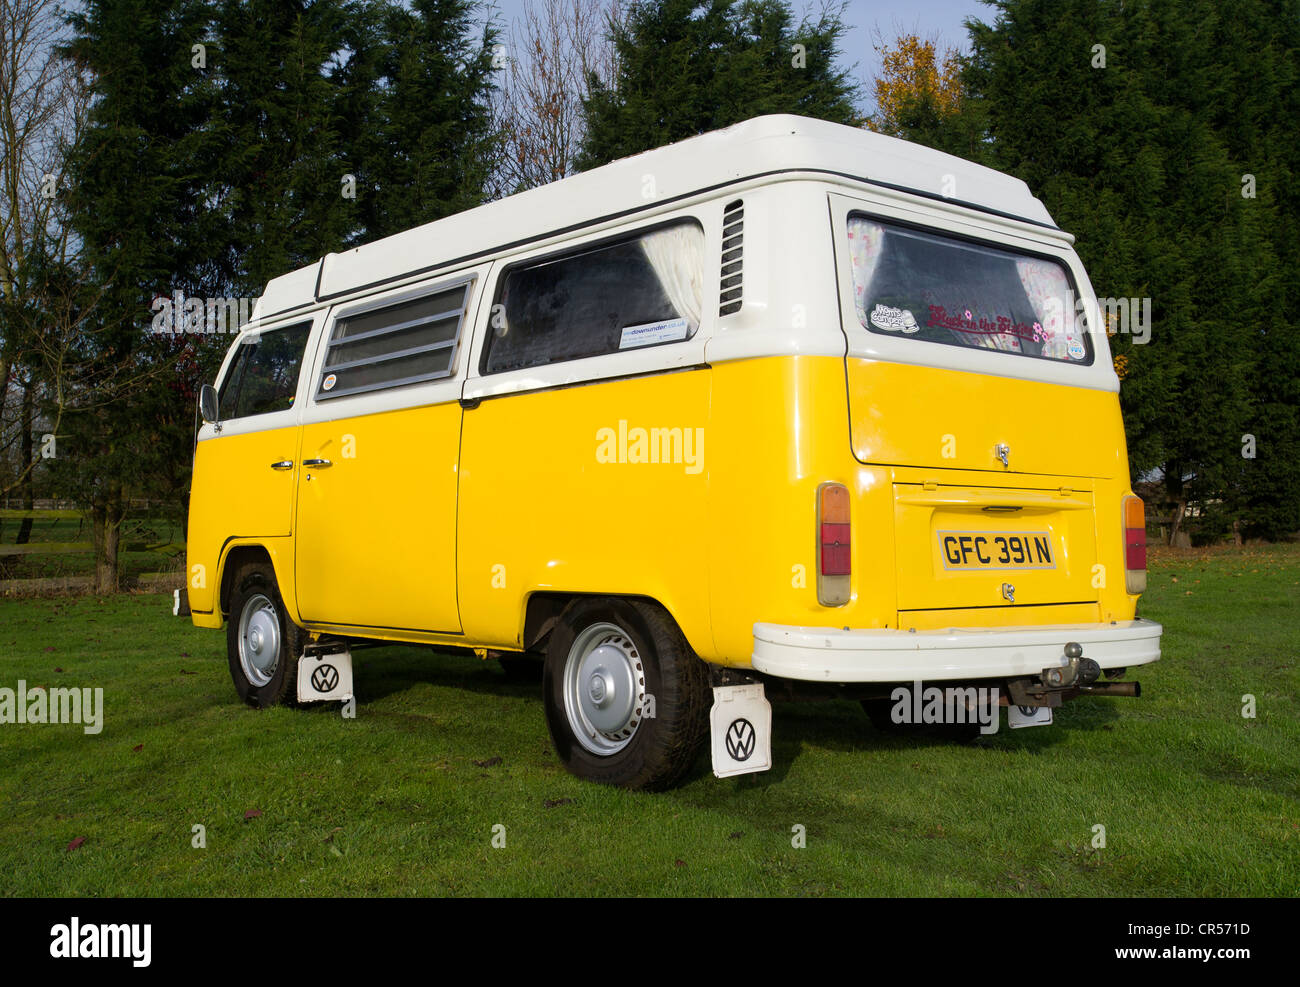 Bay WIndow VW Volkswagen camper van, micro bus - Stock Image